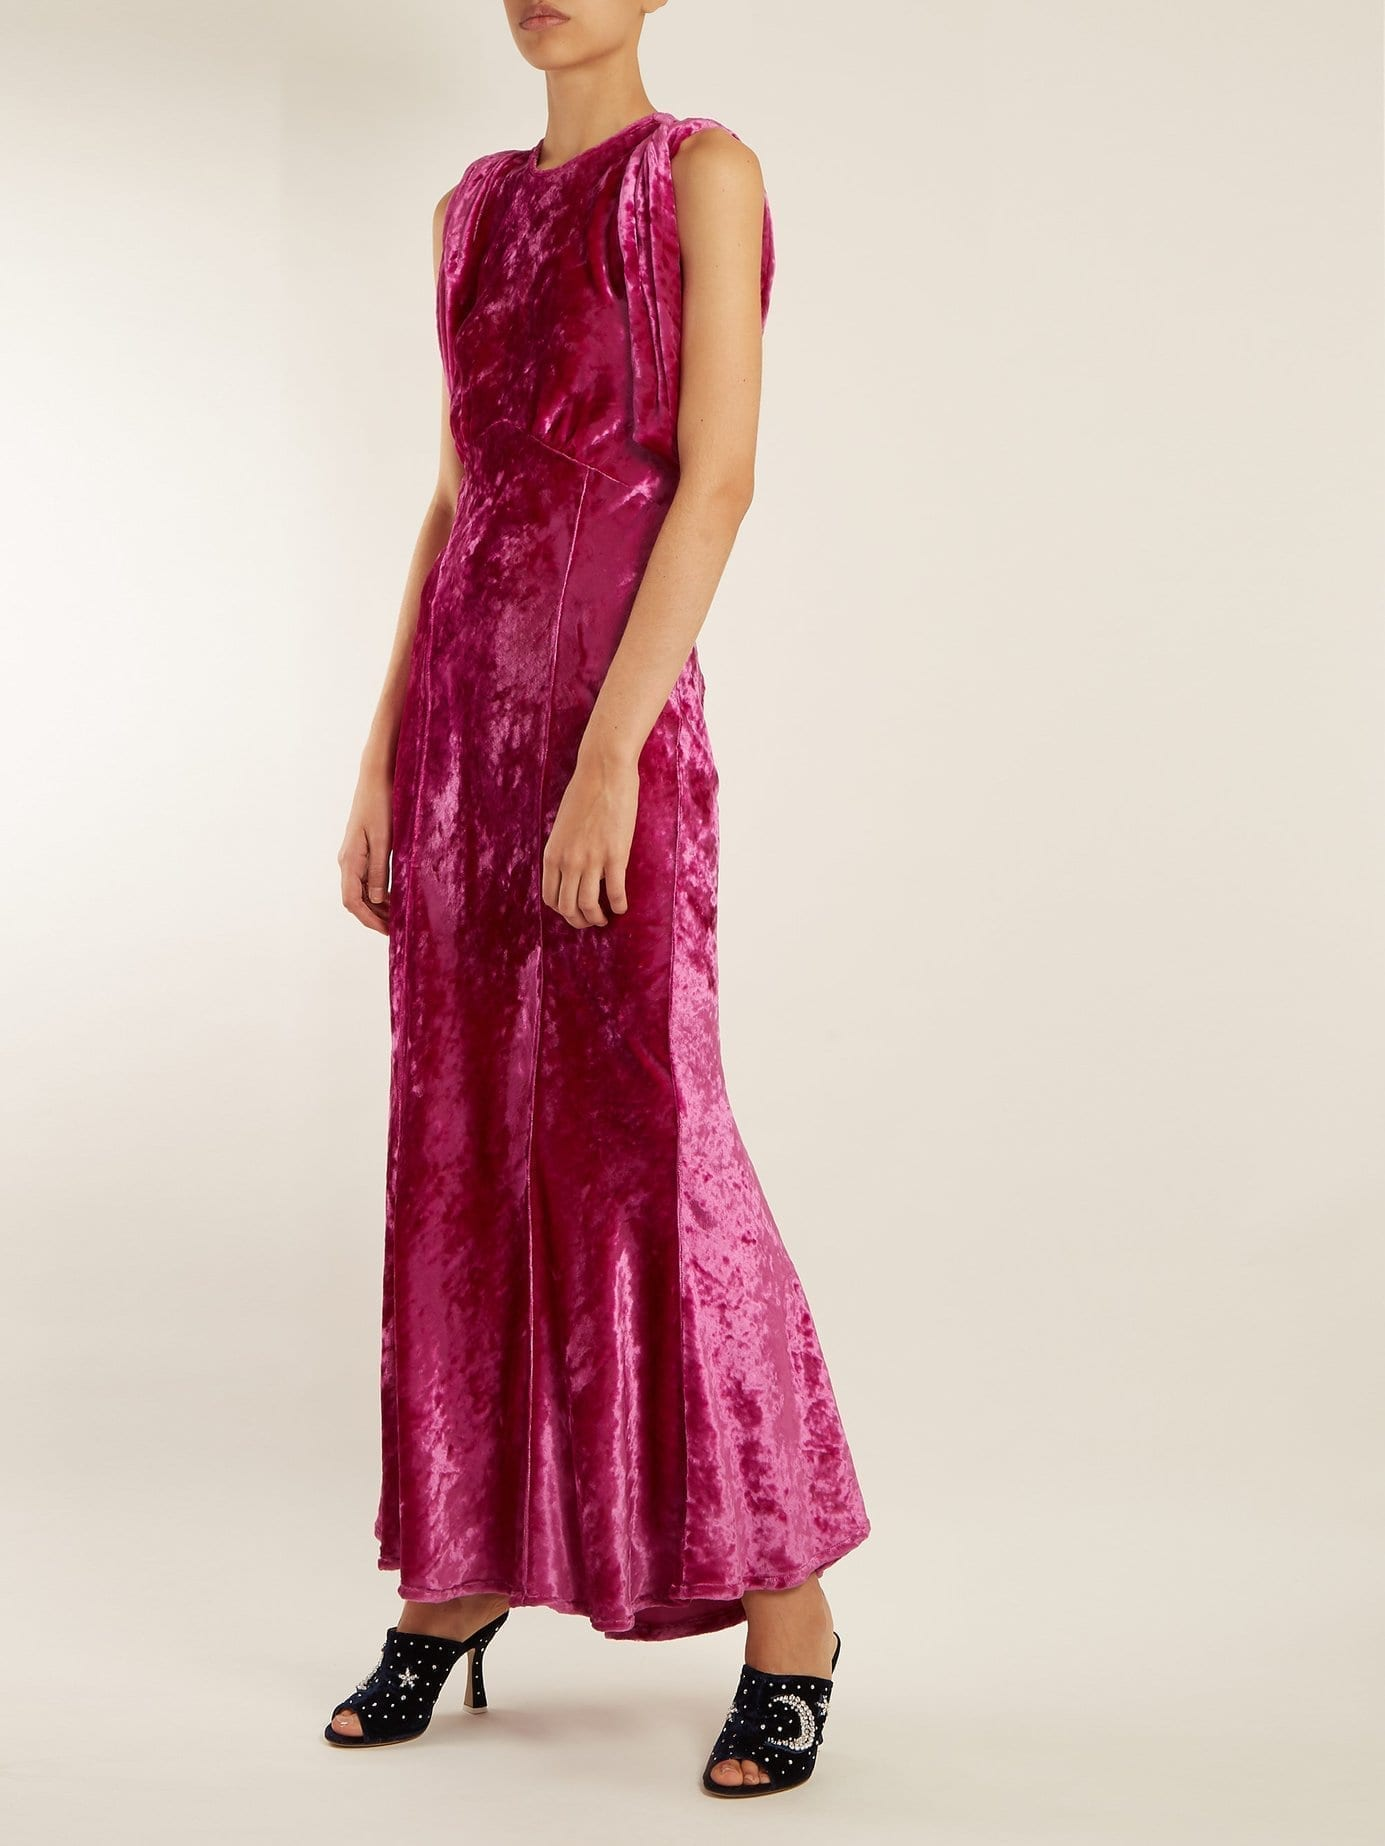 ATTICO Draped Short-sleeved Ruched Velvet Hot Pink Dress